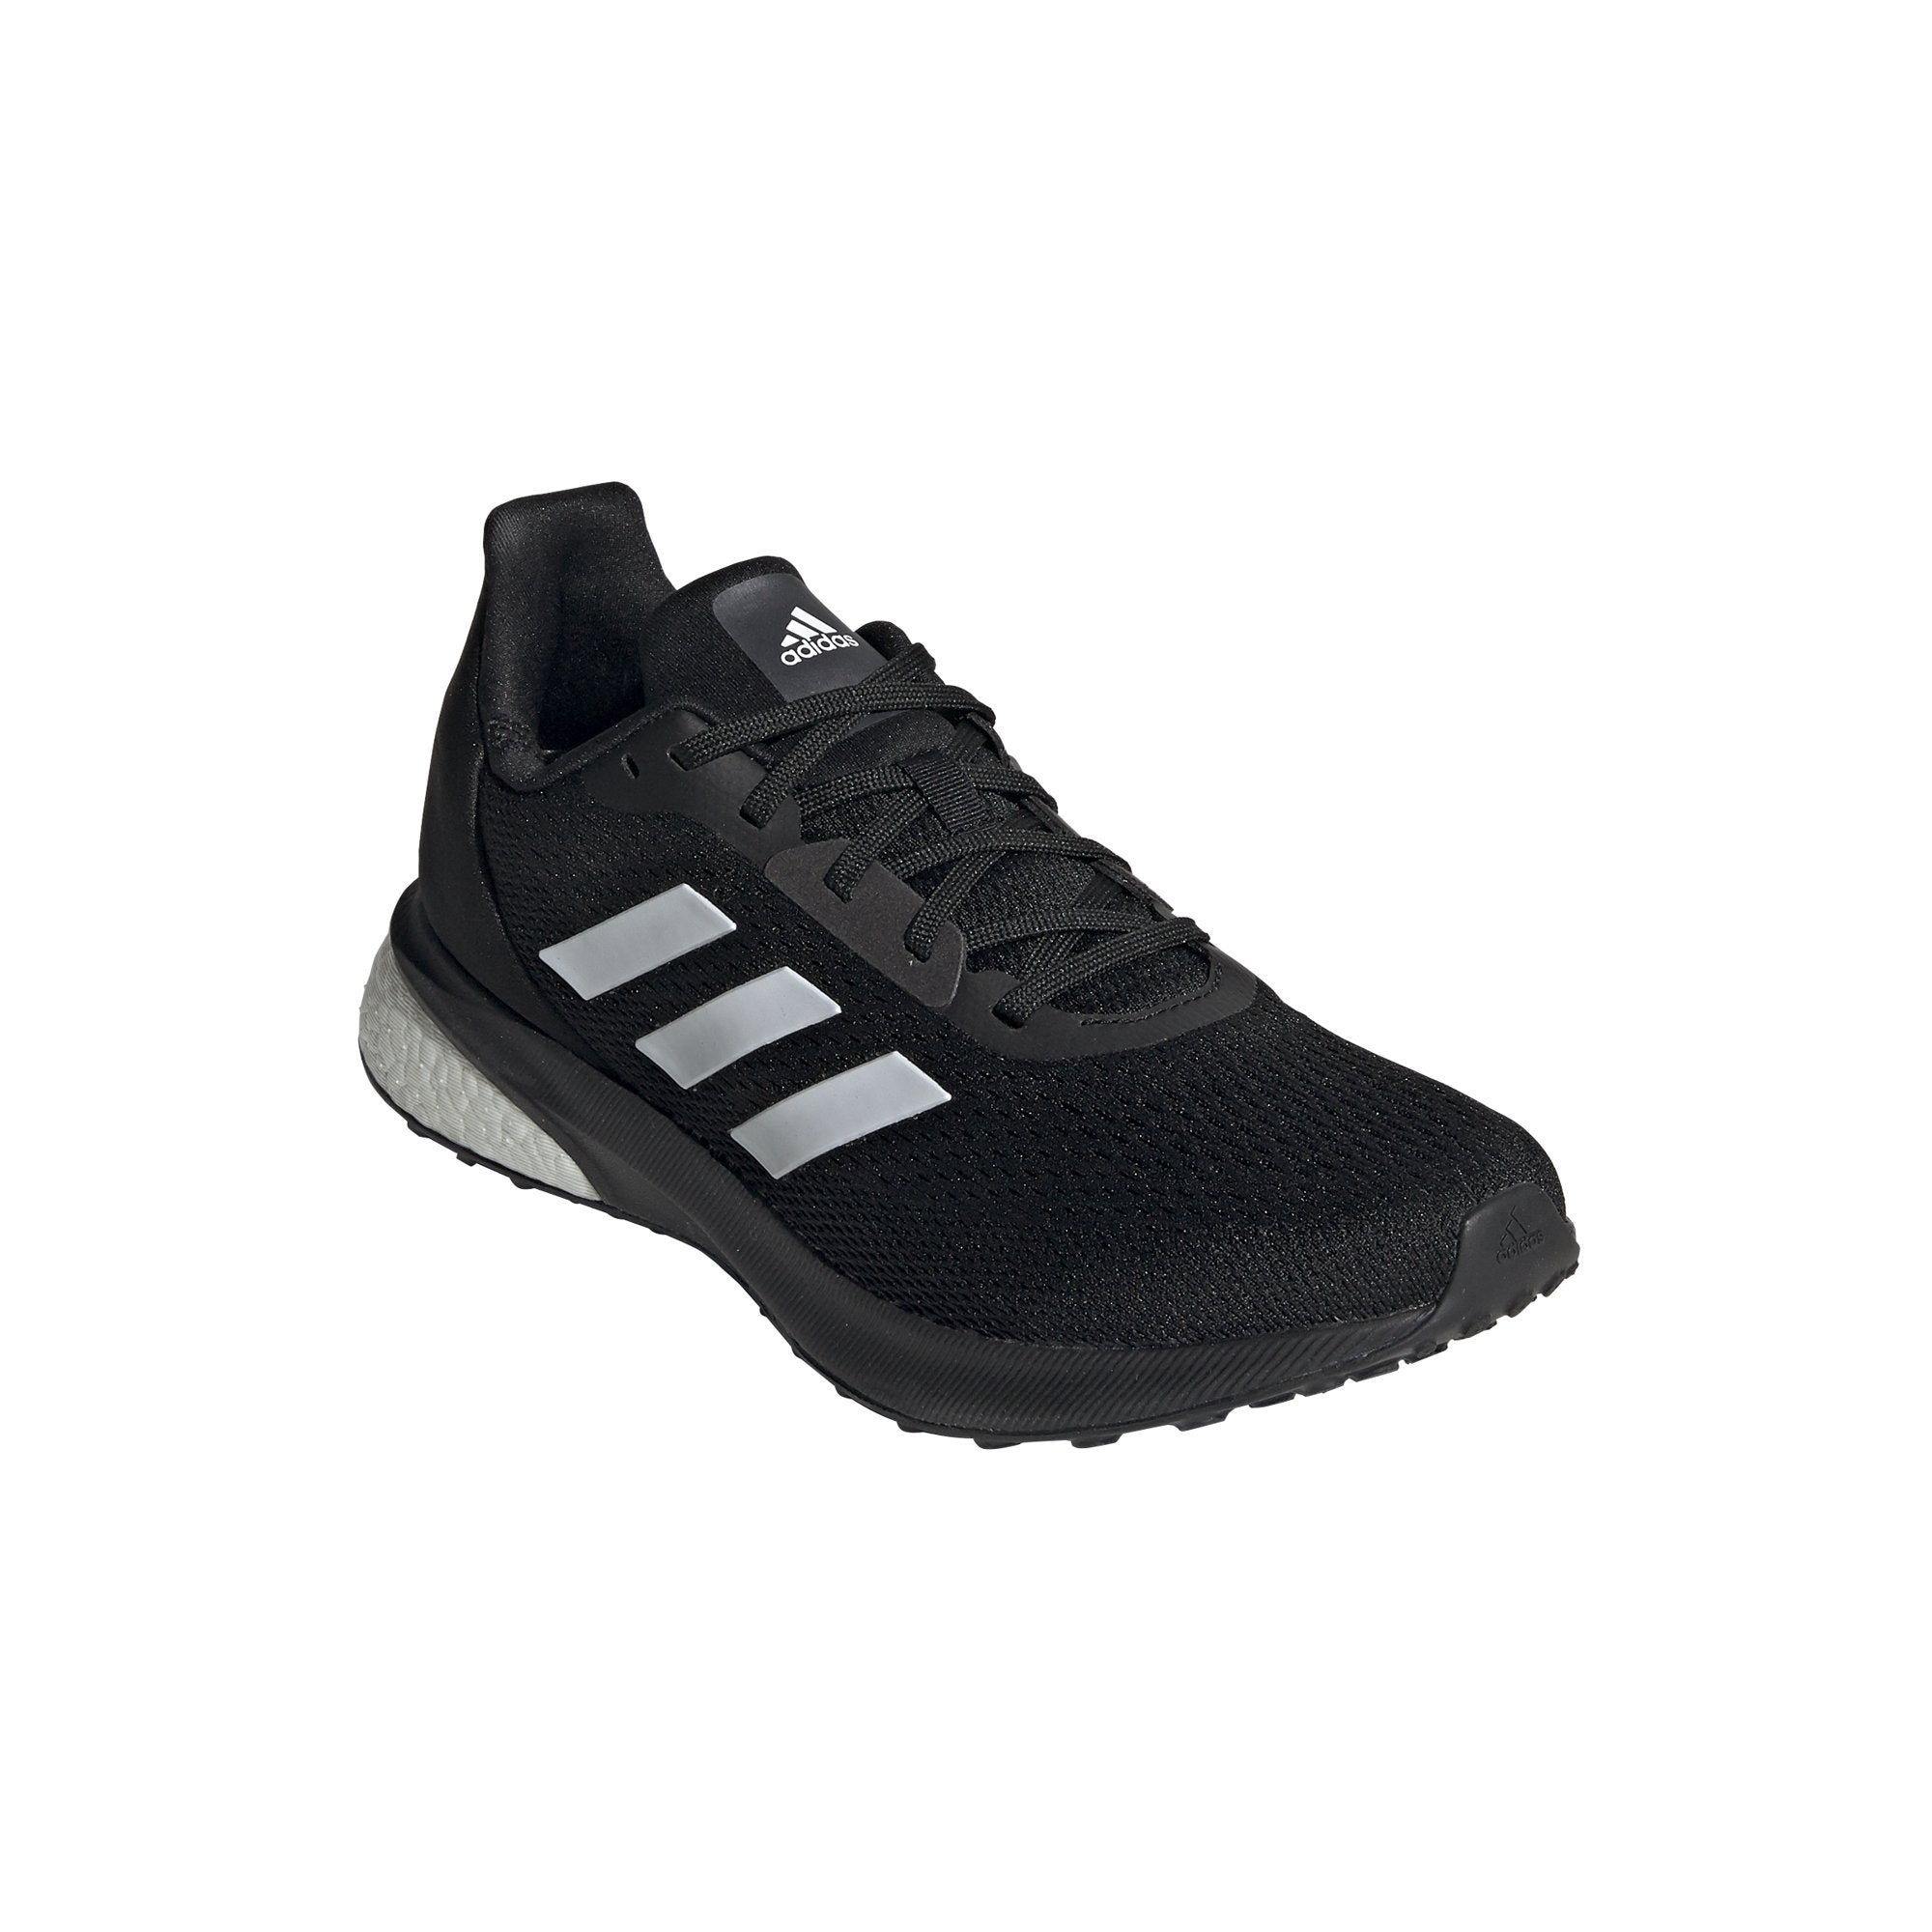 Adidas Womens Astrarun Shoes - Core Black/Ftwr White/Core Black SP-Footwear-Womens Adidas